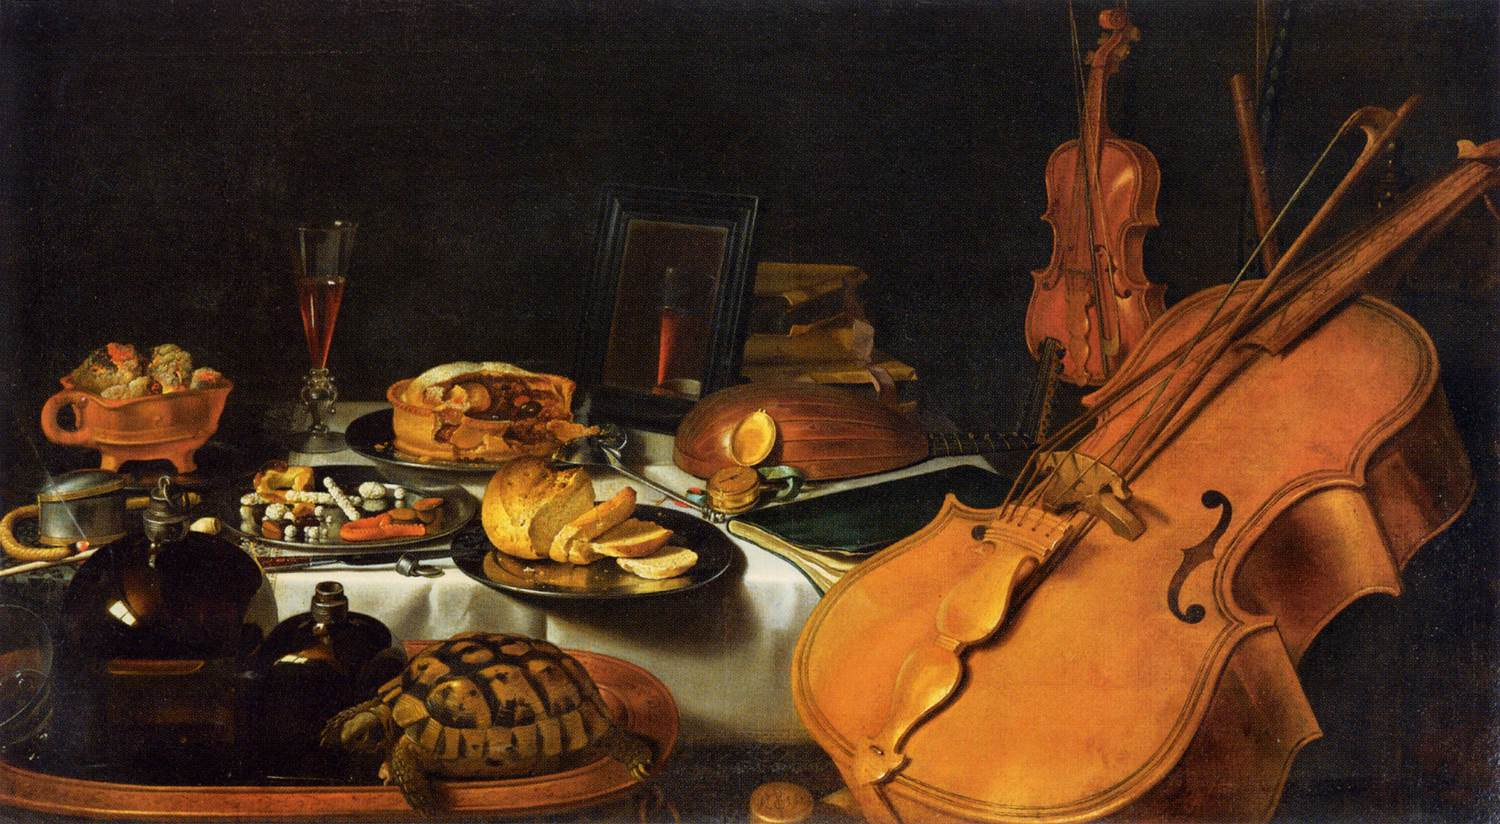 dateiclaesz pieter still life with musical